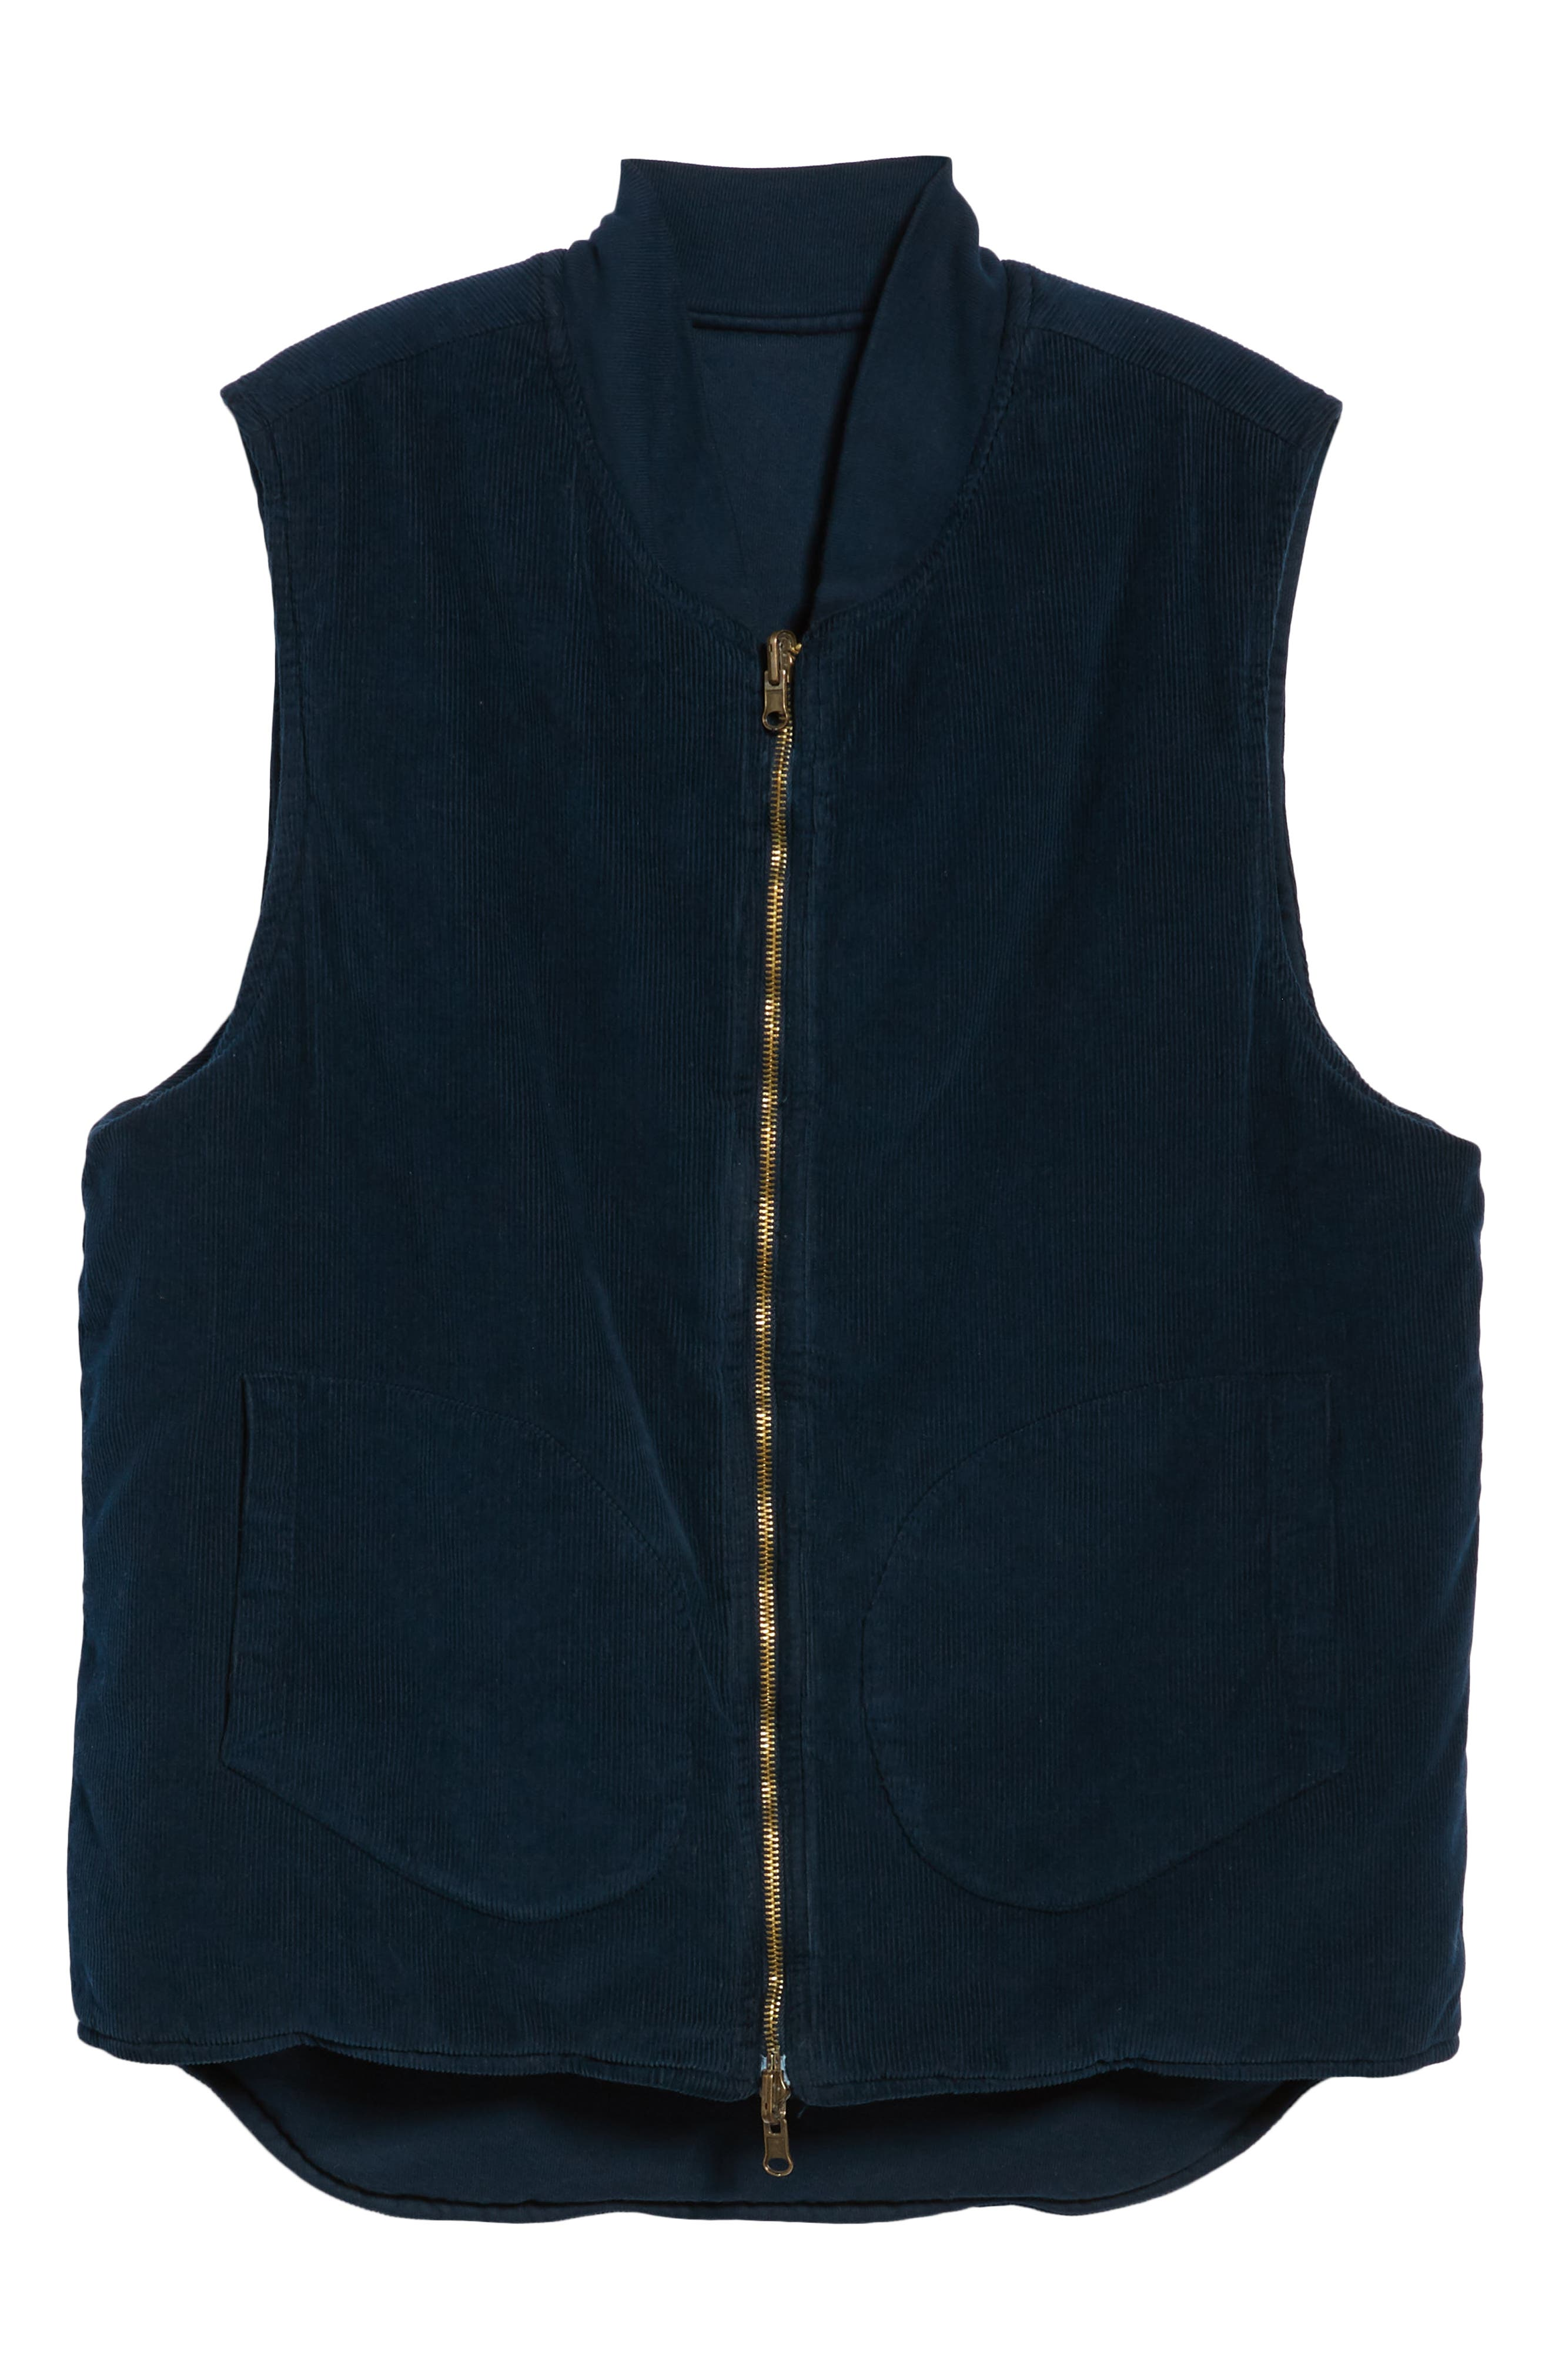 M.SINGER,                             Regular Fit Reversible Miner's Vest,                             Alternate thumbnail 7, color,                             400